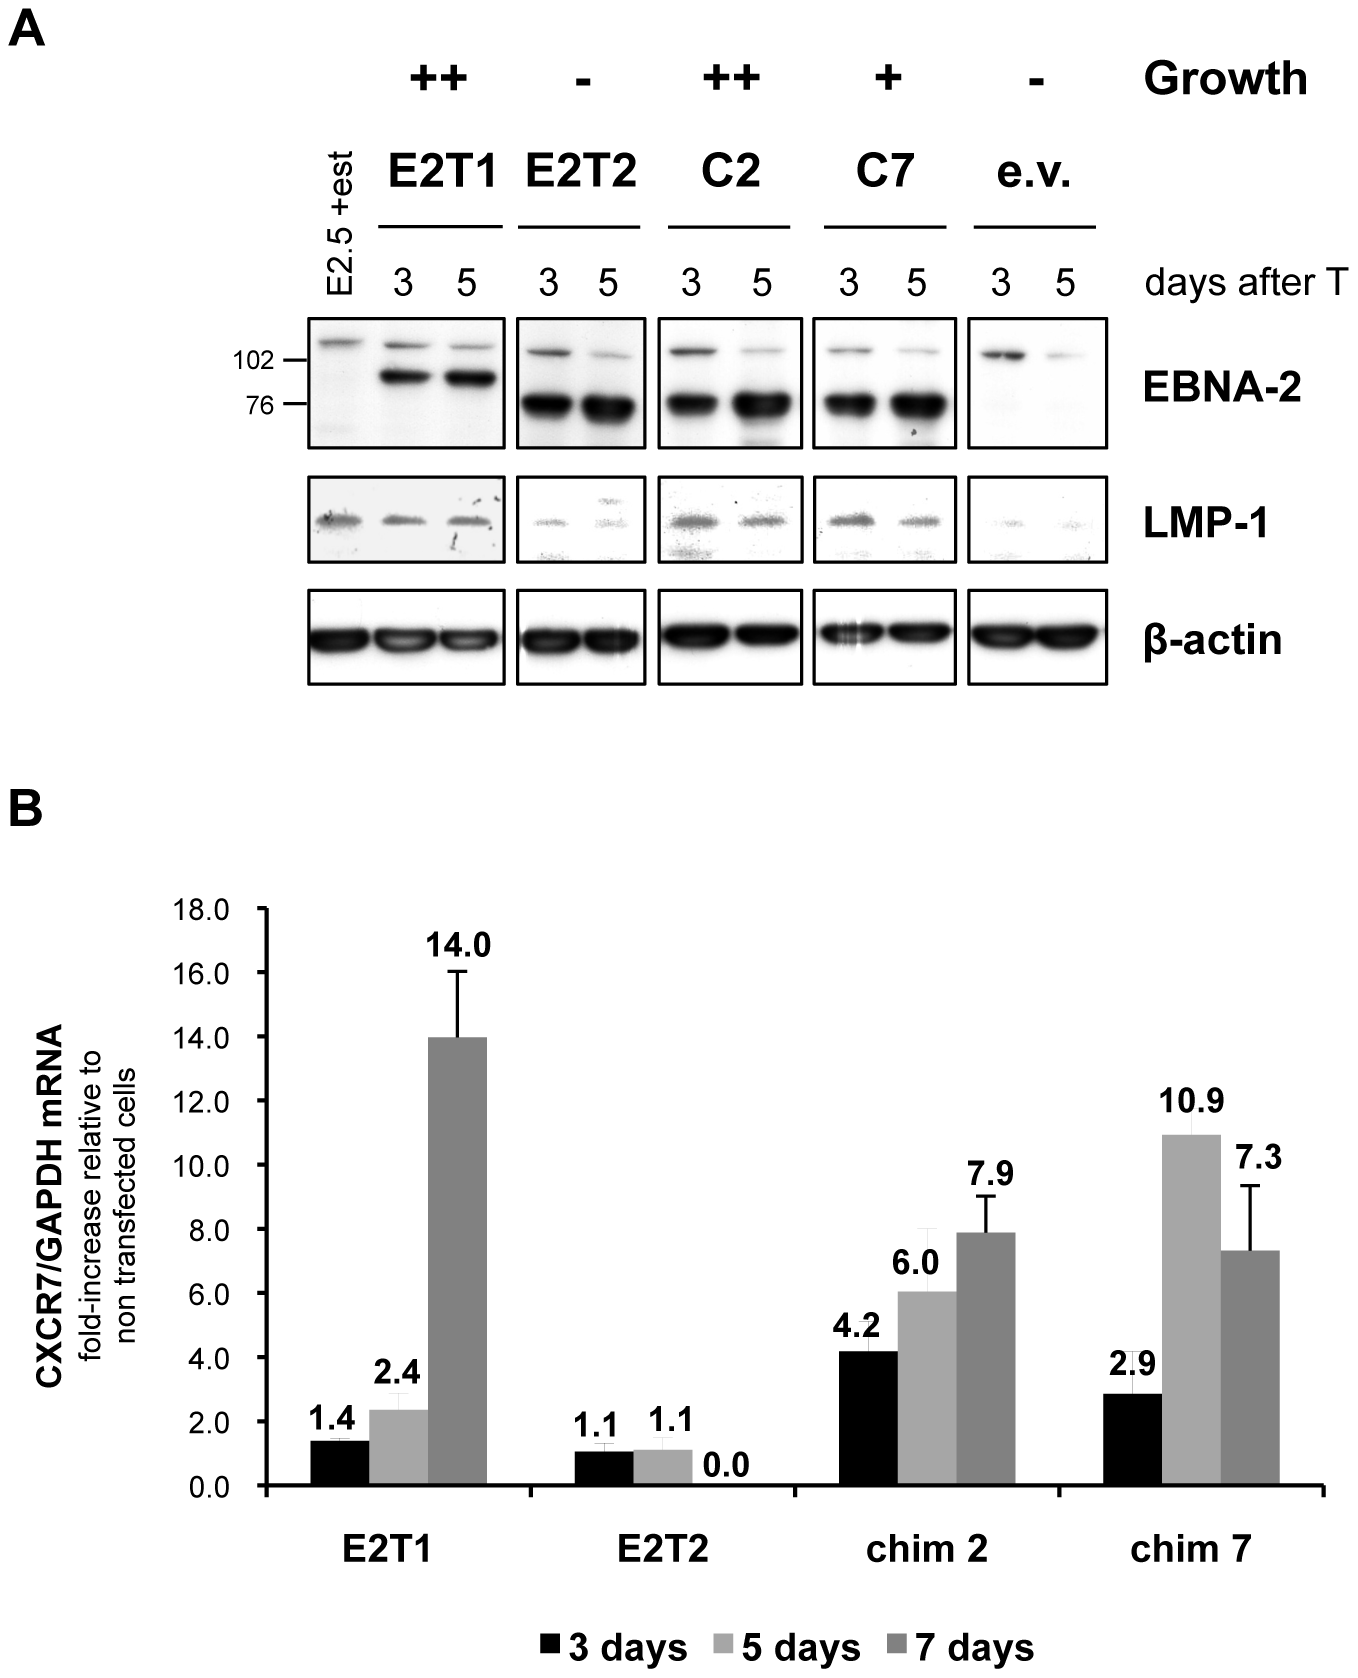 LMP-1 and CXCR7 expression induced by type 1 and type 2 EBNA-2 and chimaeras 2 and 7 correlates with the growth phenotype in the EREB2.5 growth assay.